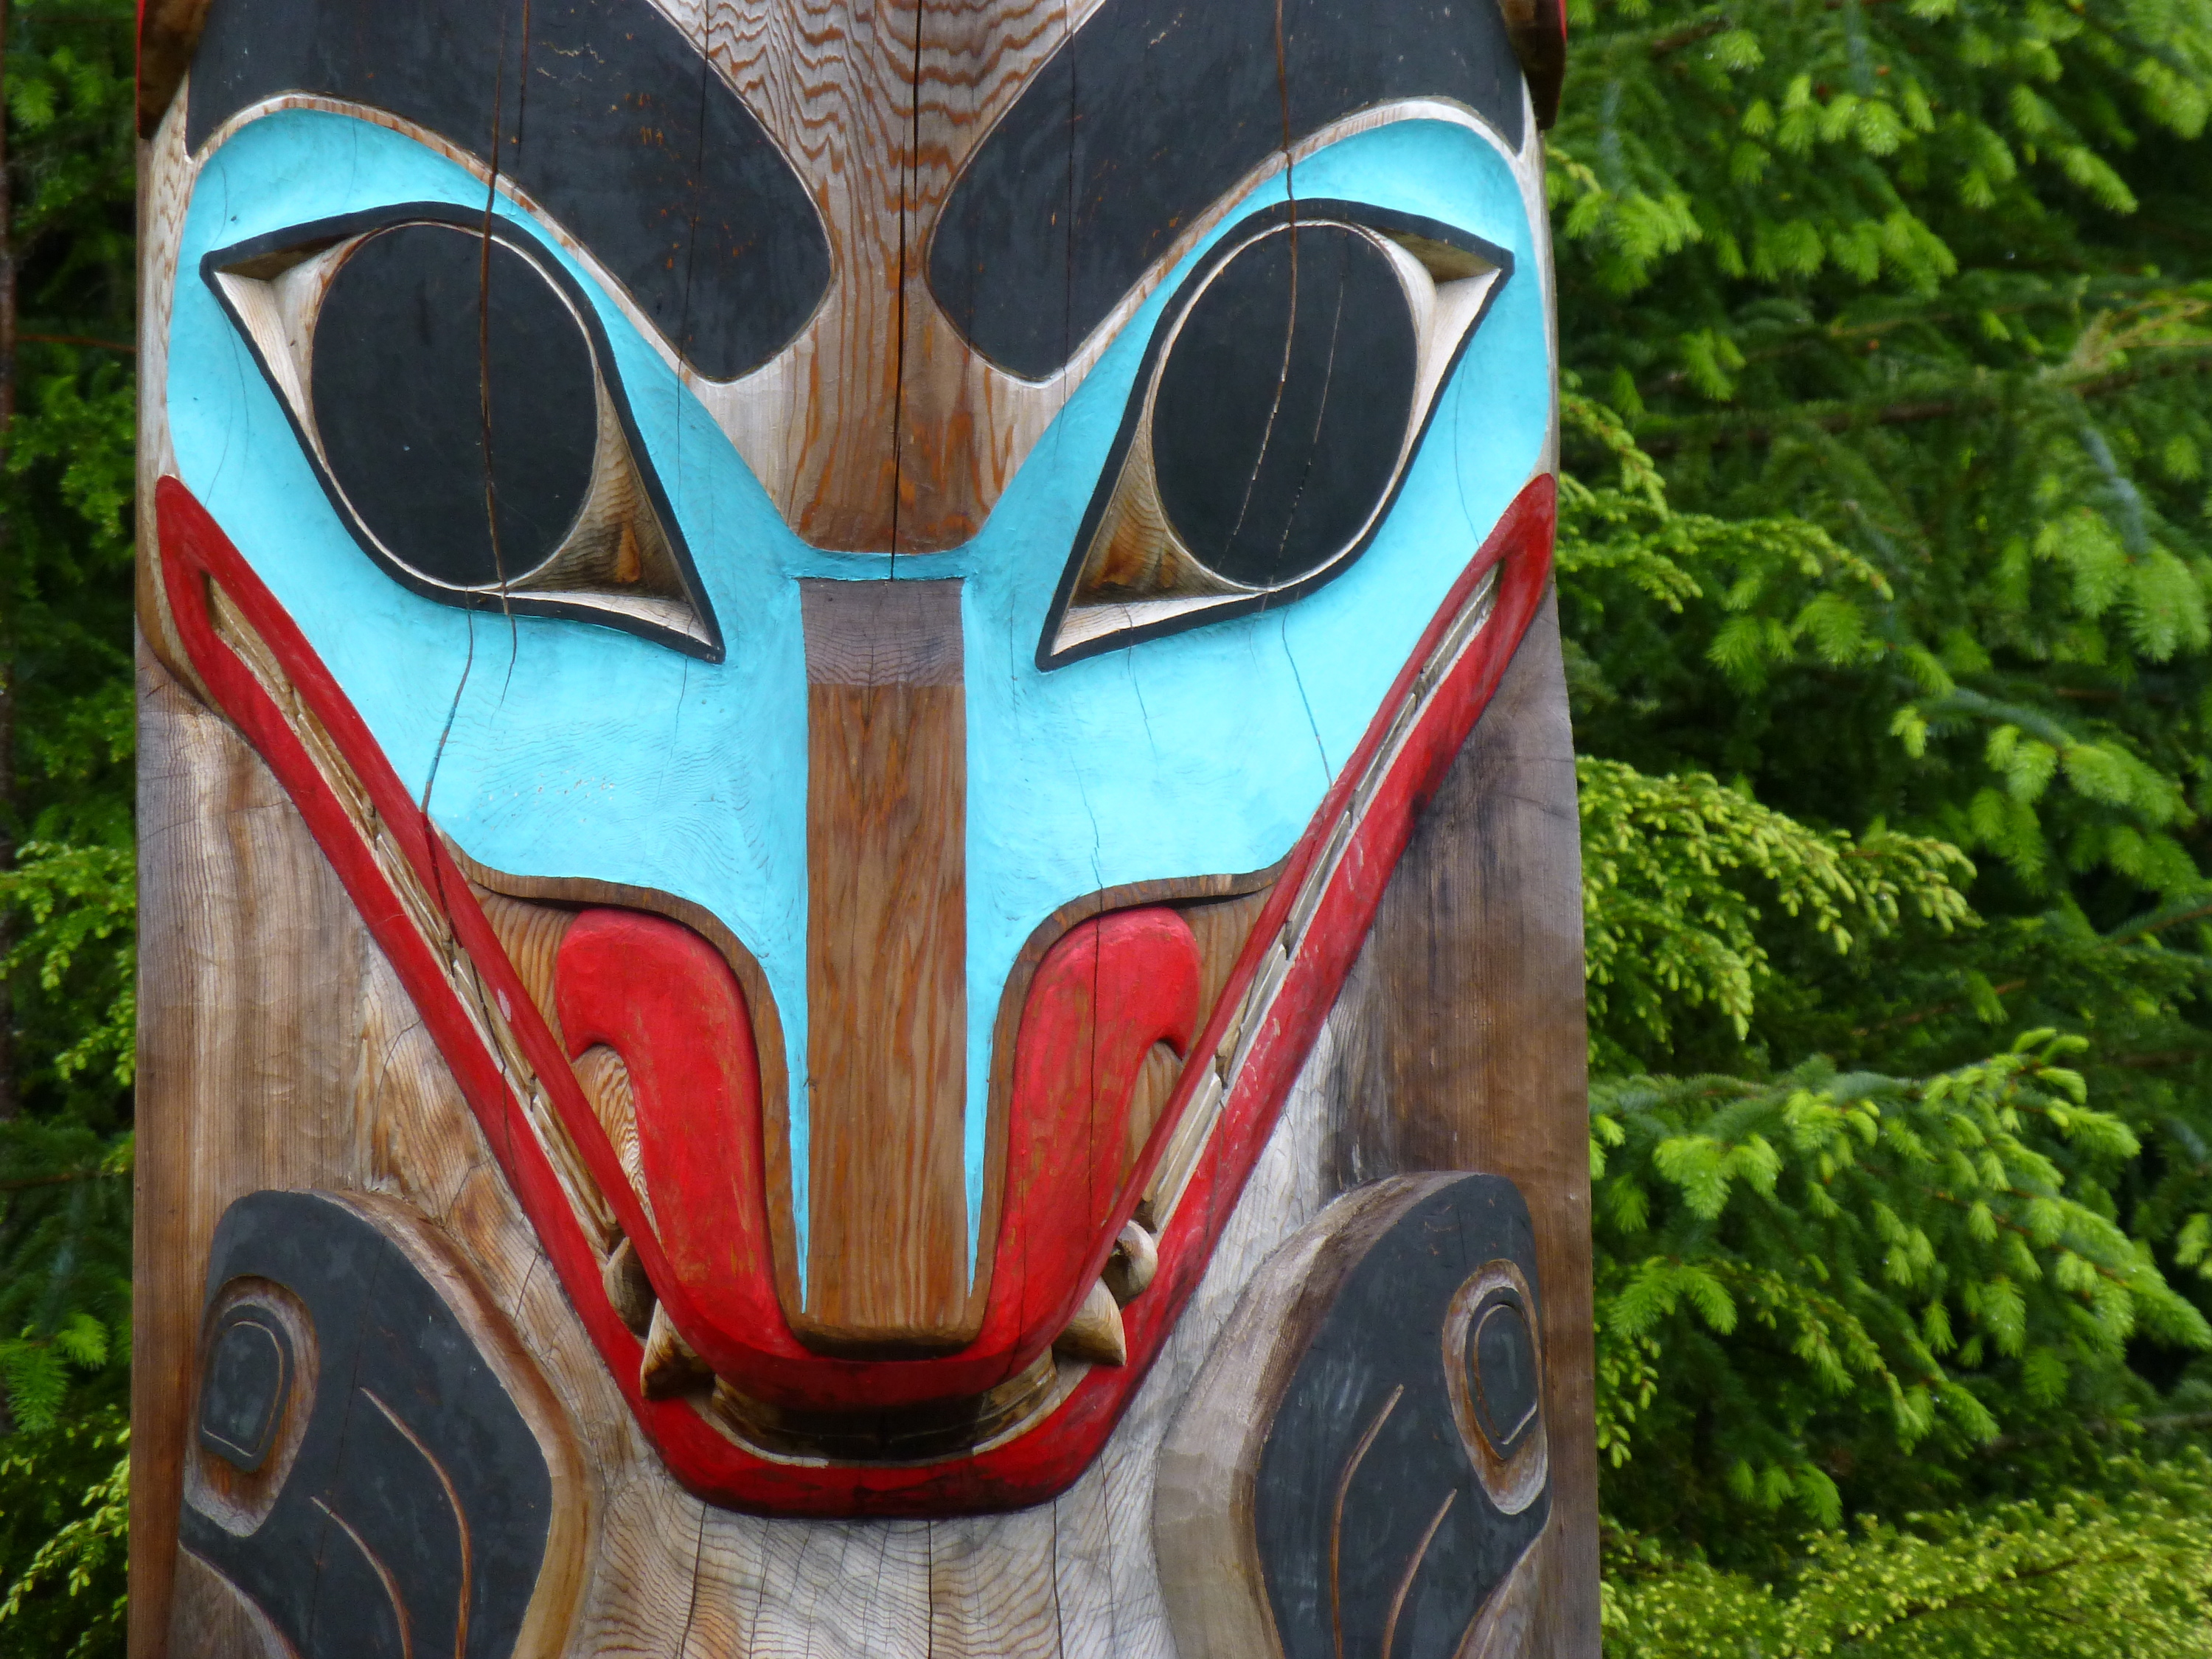 Tlingit and Haida Tribes partner with city to address rise in shoplifting incidents